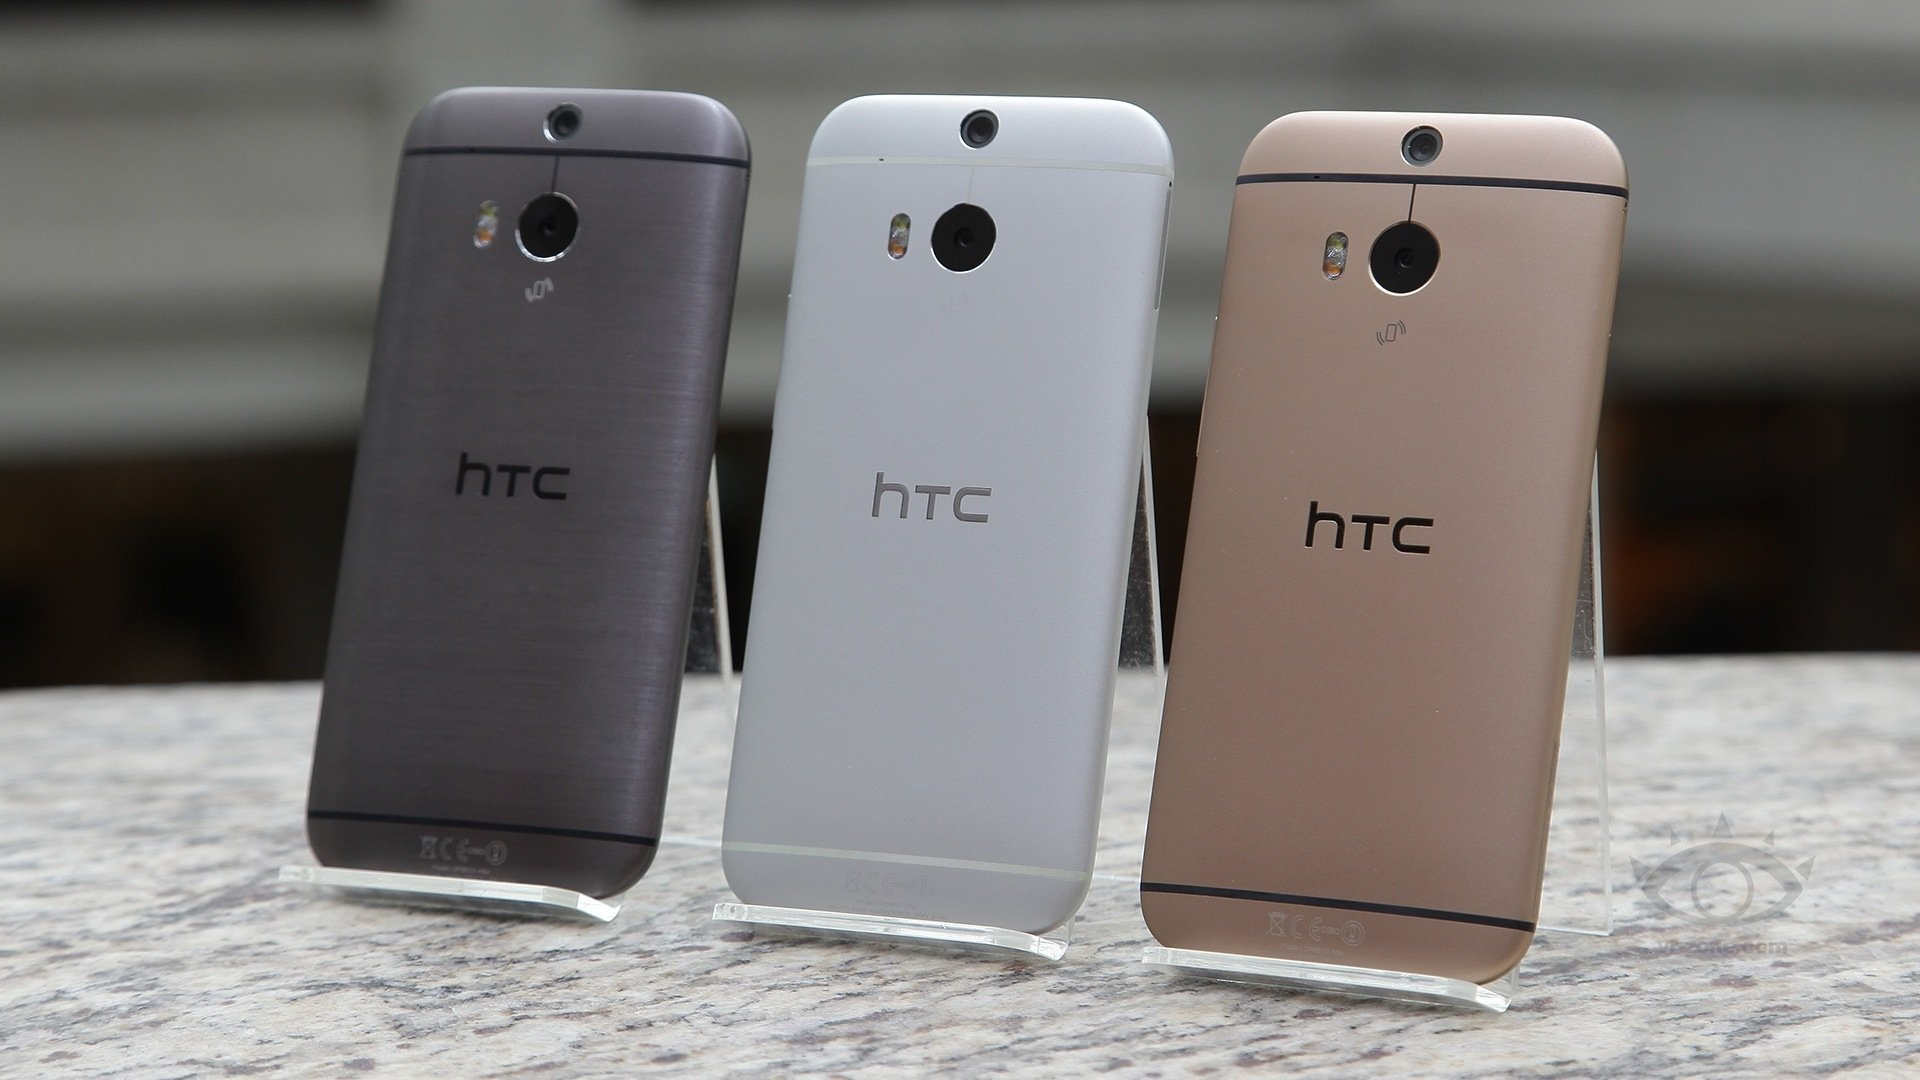 HTC One M8 Prime - images